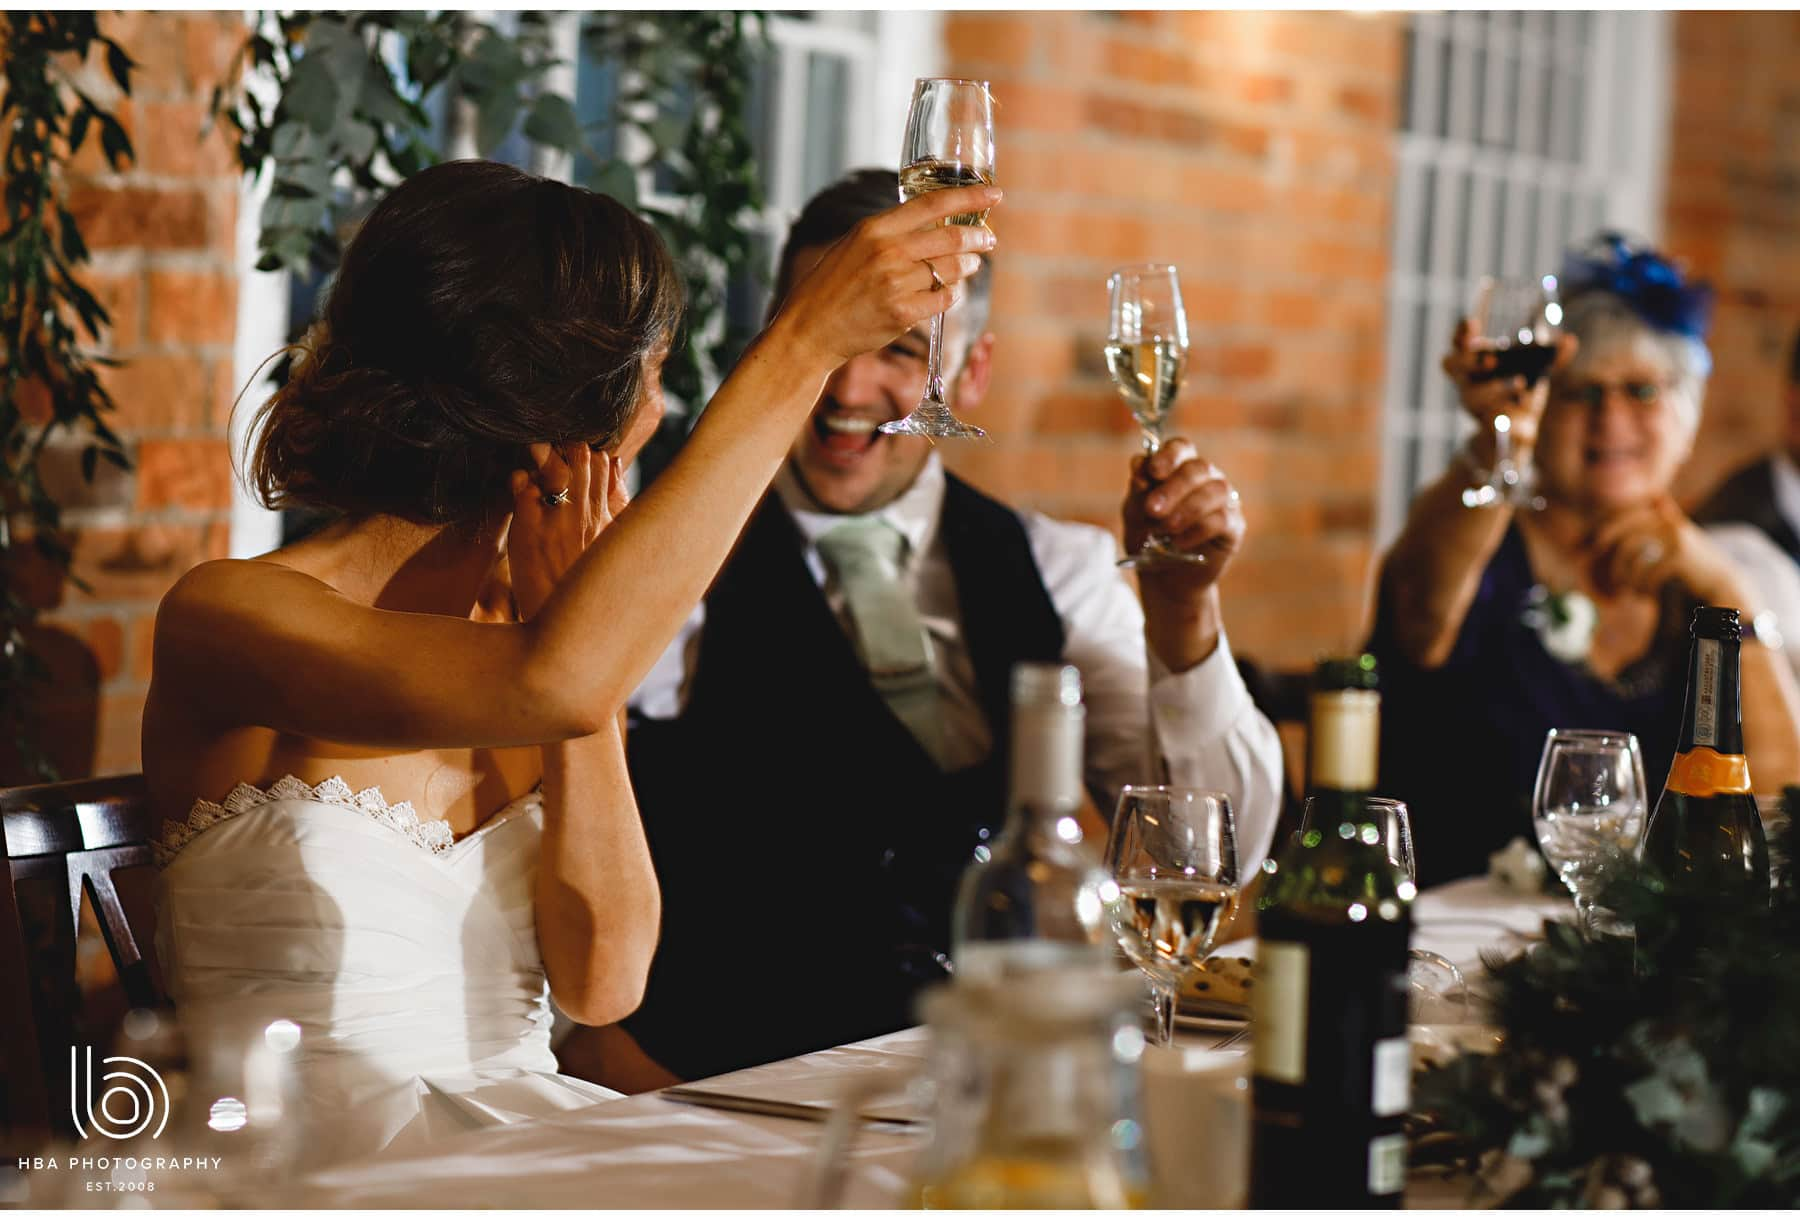 the bride and groom toasting during the speeches